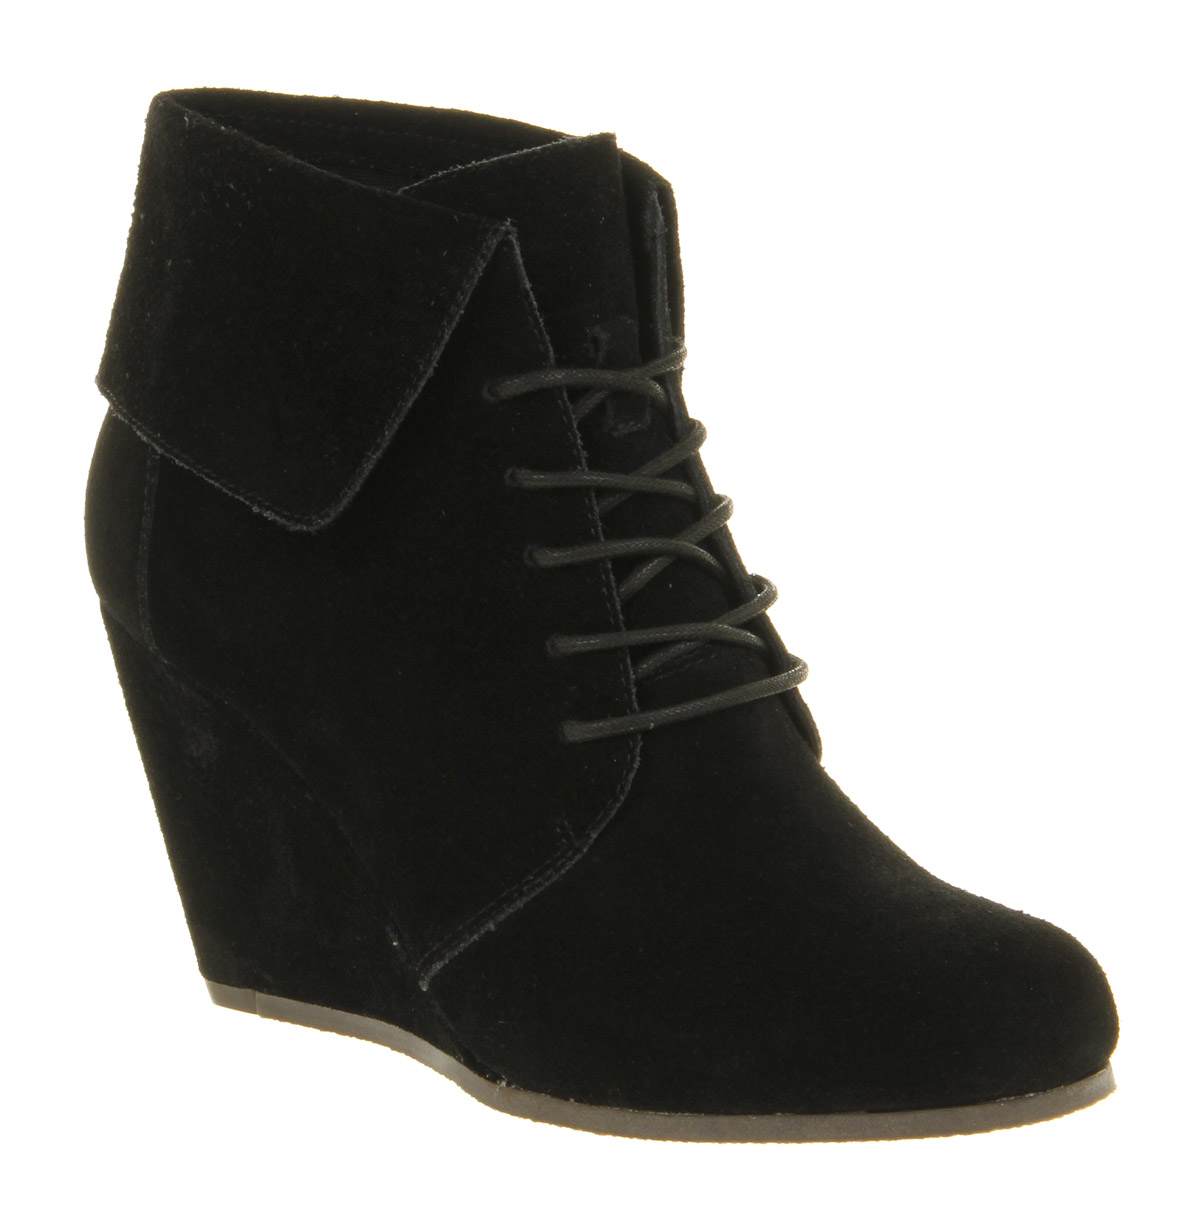 Black Wedge Boots. Clothing. Shoes. Black Wedge Boots. Showing 48 of results that match your query. Search Product Result. Product - Pure Women's Fashion Round Toe Slouch Large Buckle Wedge Mid Calf Boot Shoes. Product Image. Price $ Product Title.